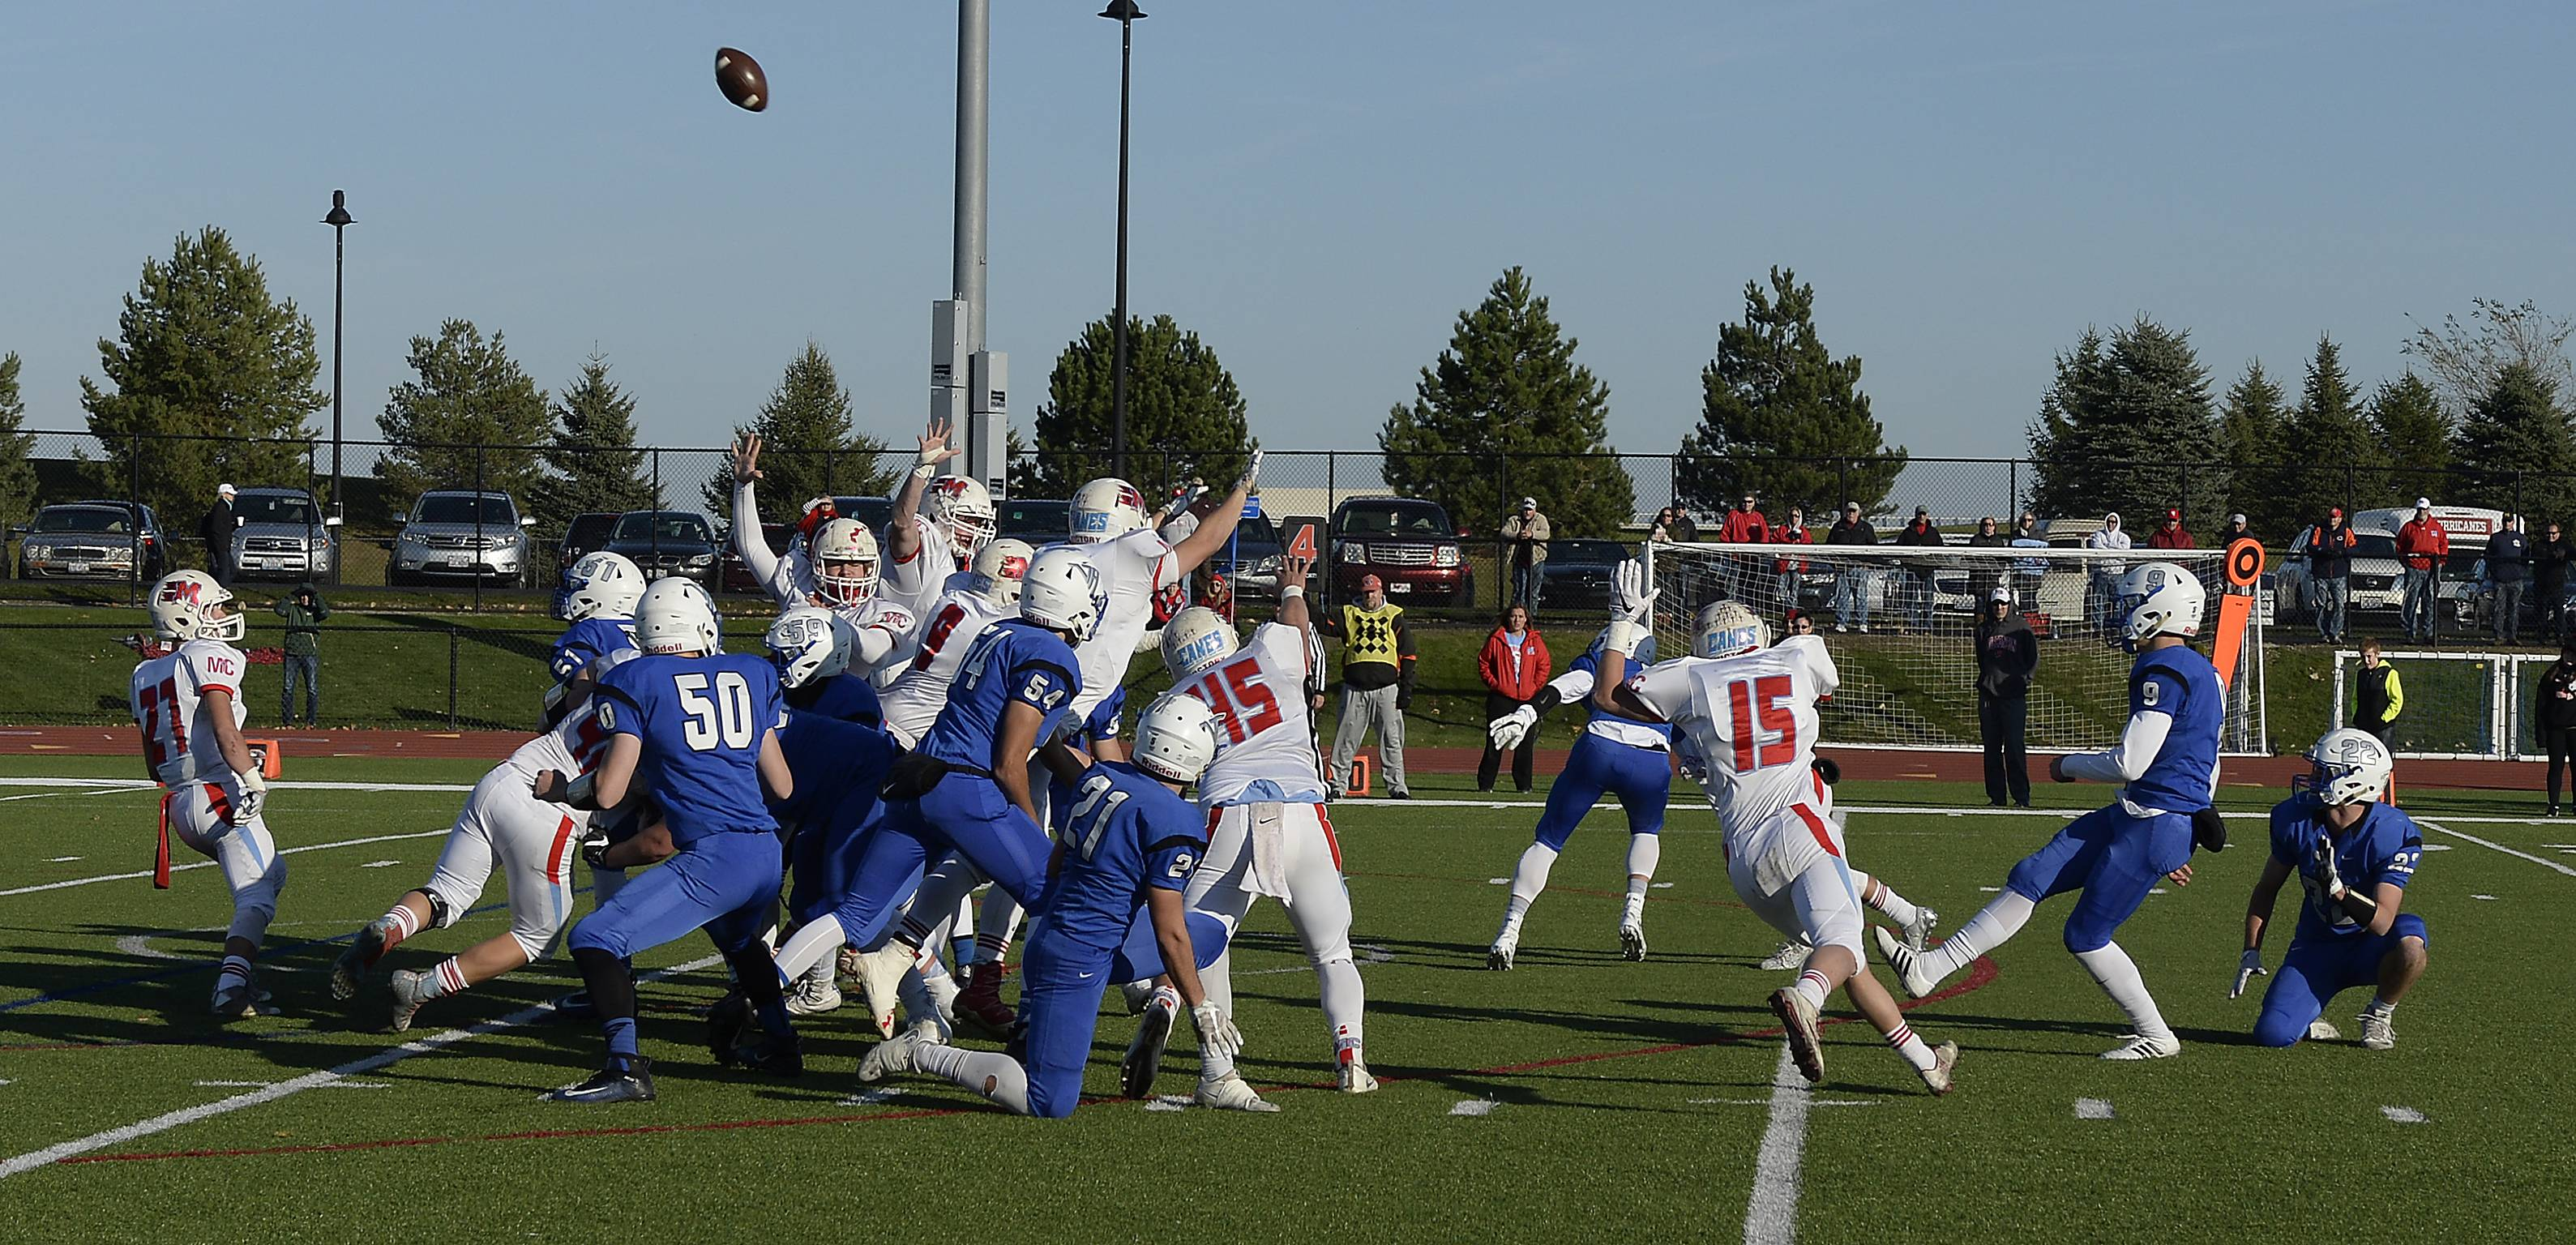 Vernon Hills' Andre Szmyt scores 3 on this field goal in the third quarter to put Vernon Hills head in the Class 5A state quarterfinals at Vernon Hills on Saturday.